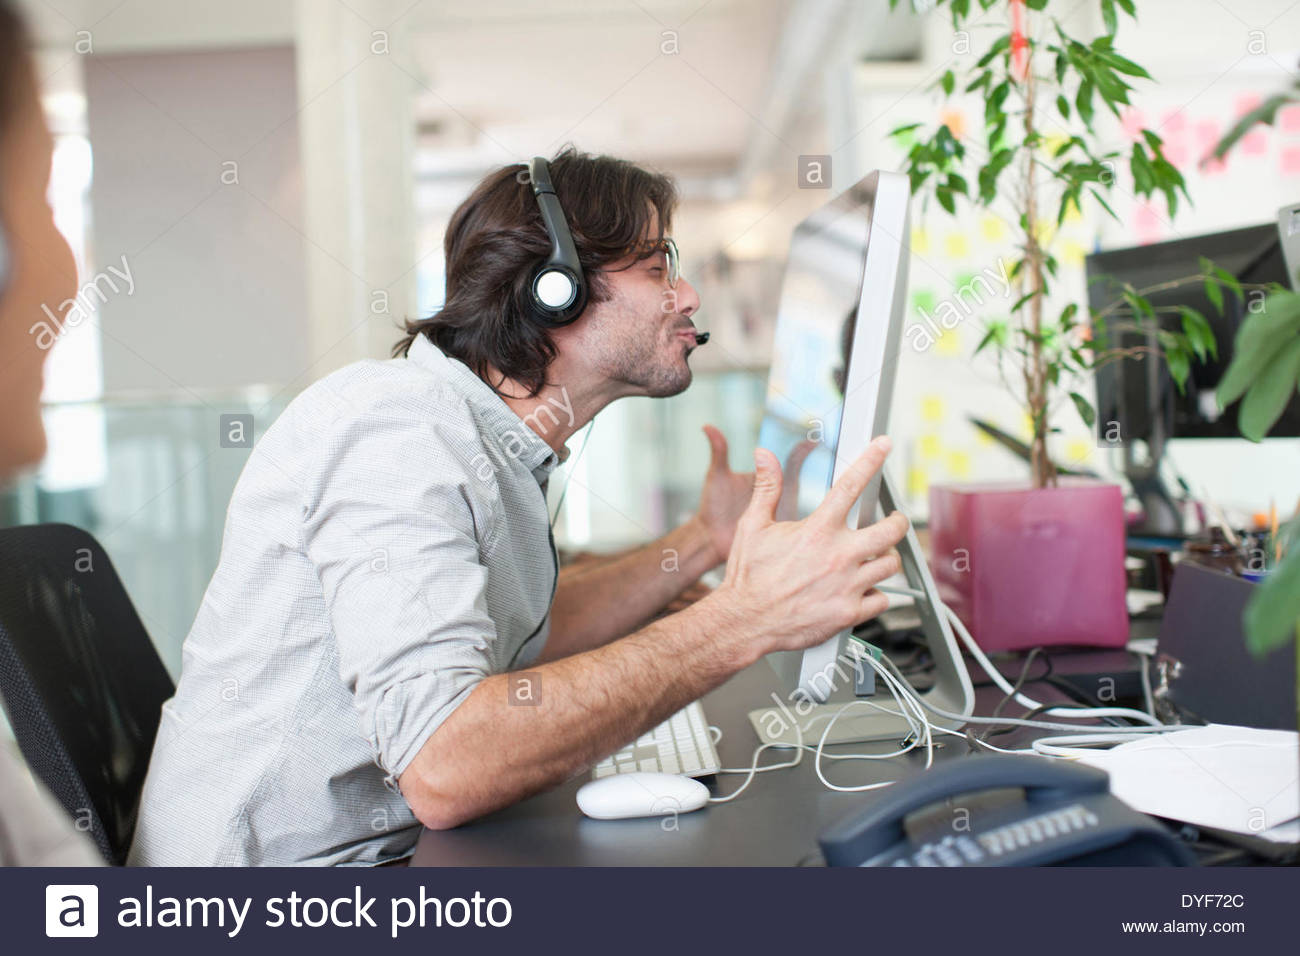 Business people headsets working computers in office - Stock Image